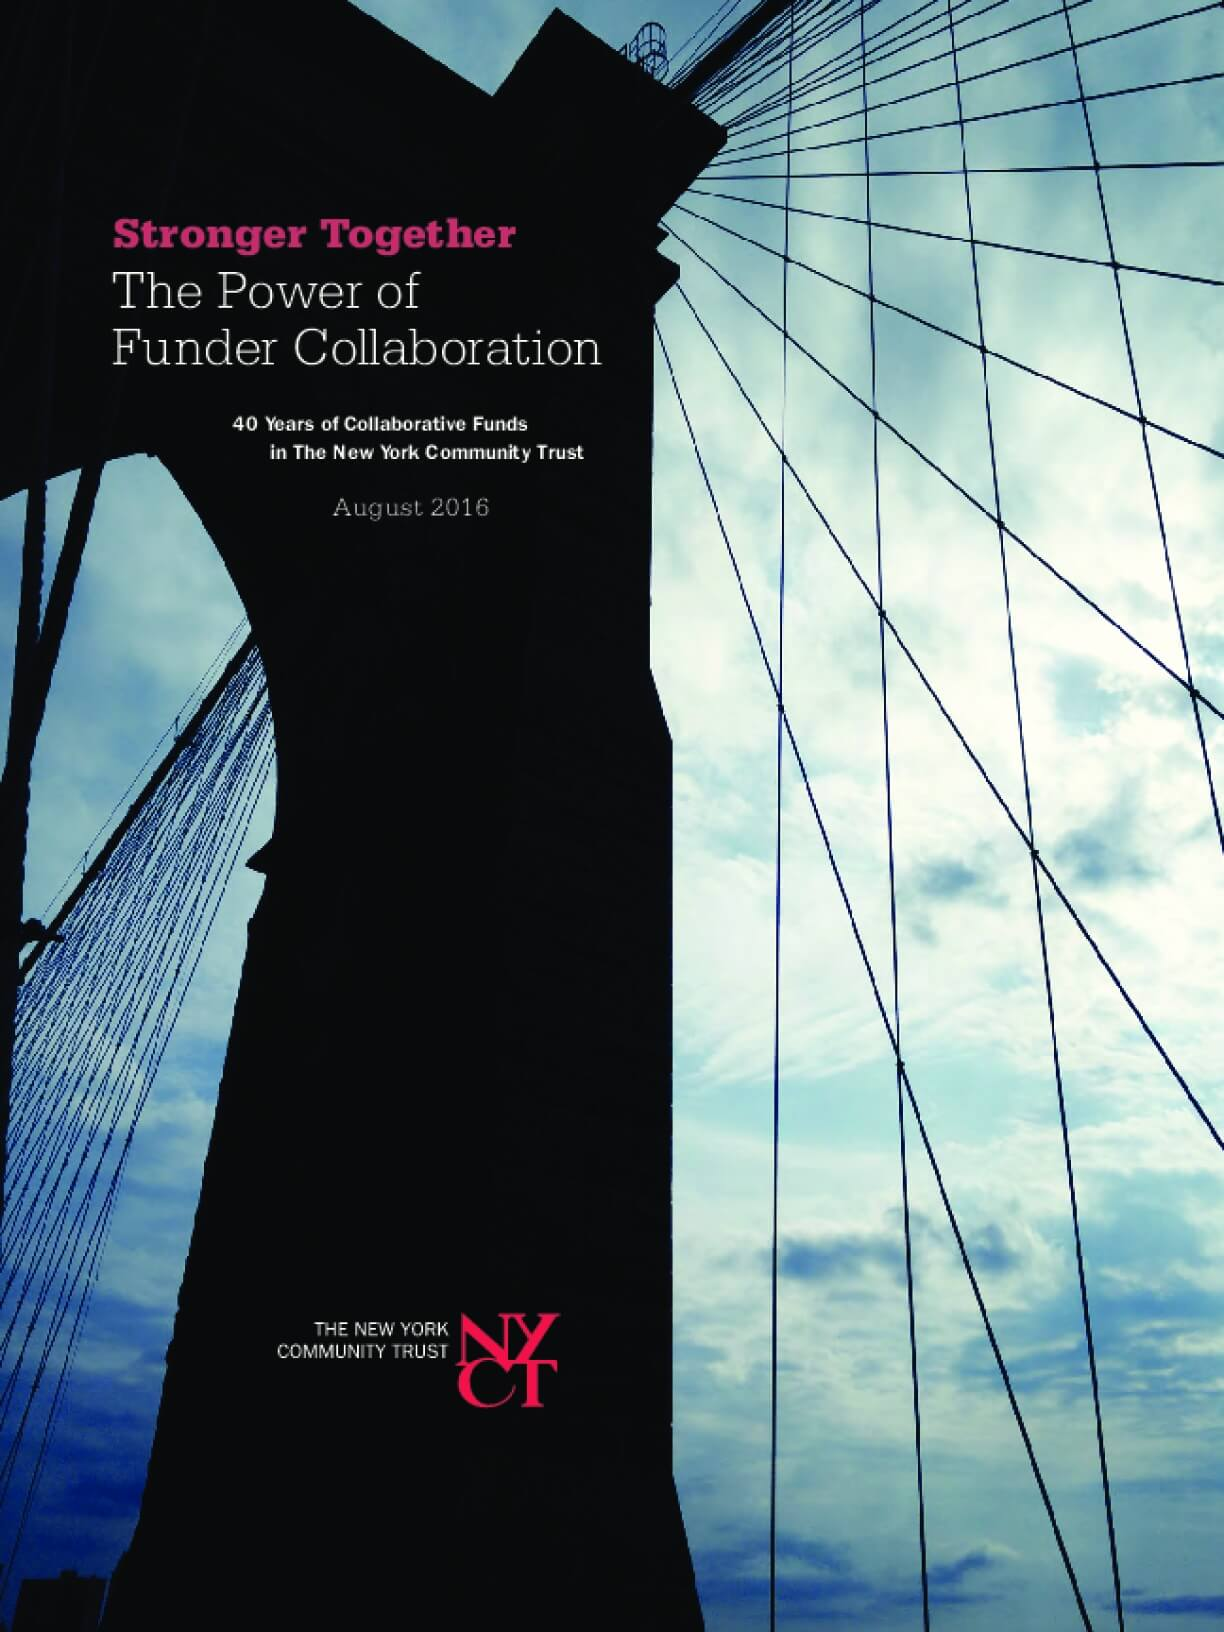 Stronger Together: The Power of Funder Collaboration - 40 Years of Collaborative Funds in the New York Community Trust